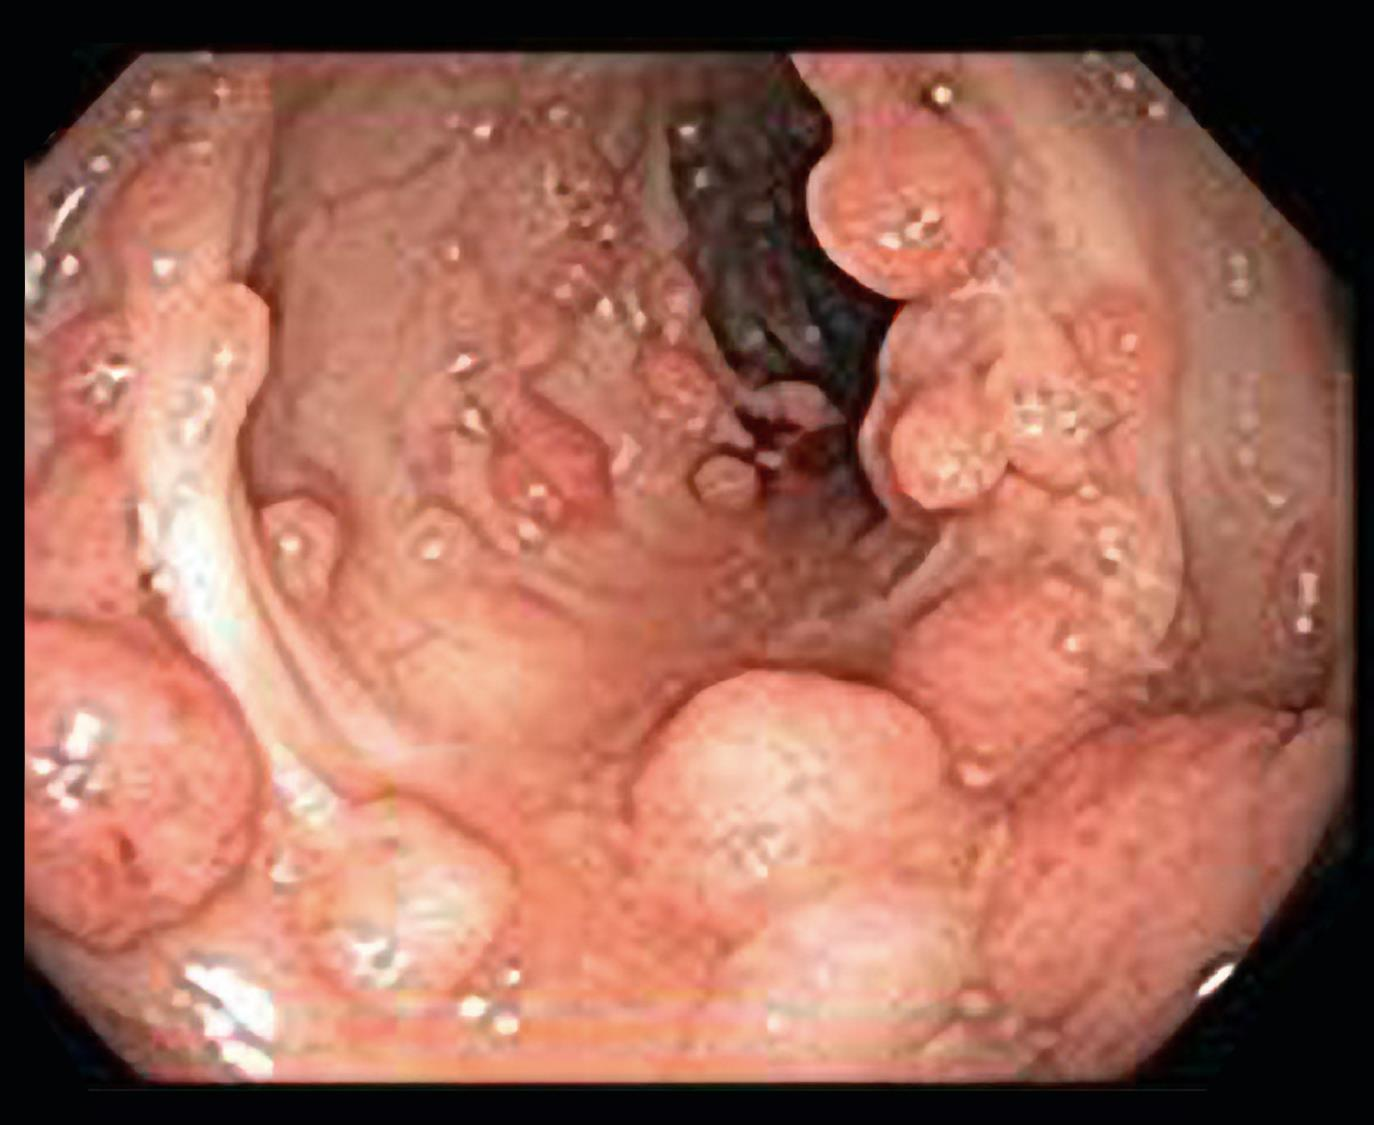 Many polyps protrude from the inner lining of the colon.